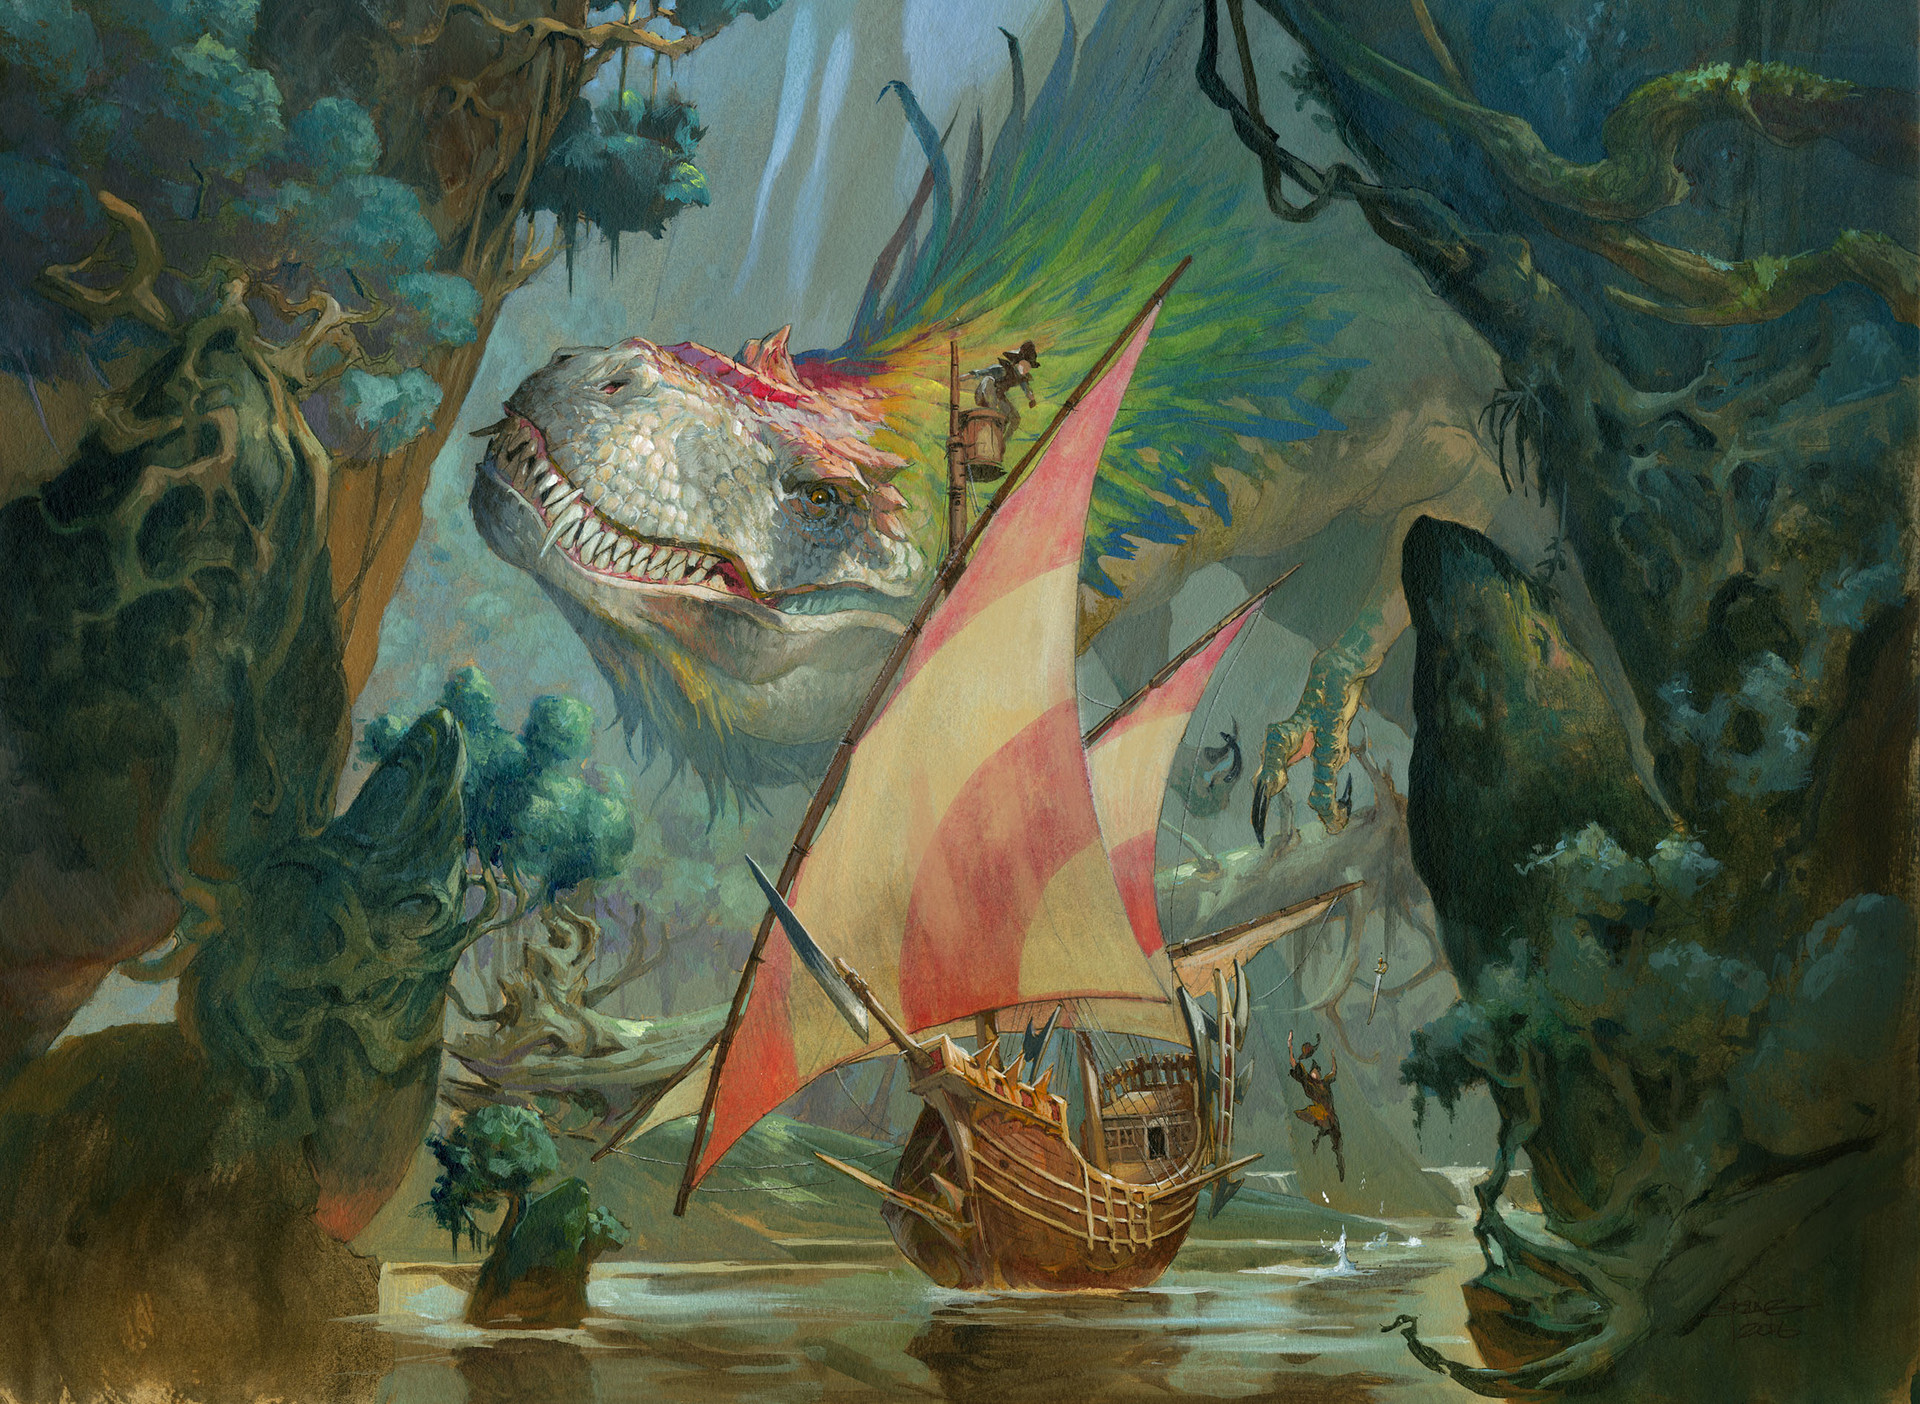 Jesper Ejsing Acrylic Painting Colossal Dreadmaw Magic the Gathering ixalan